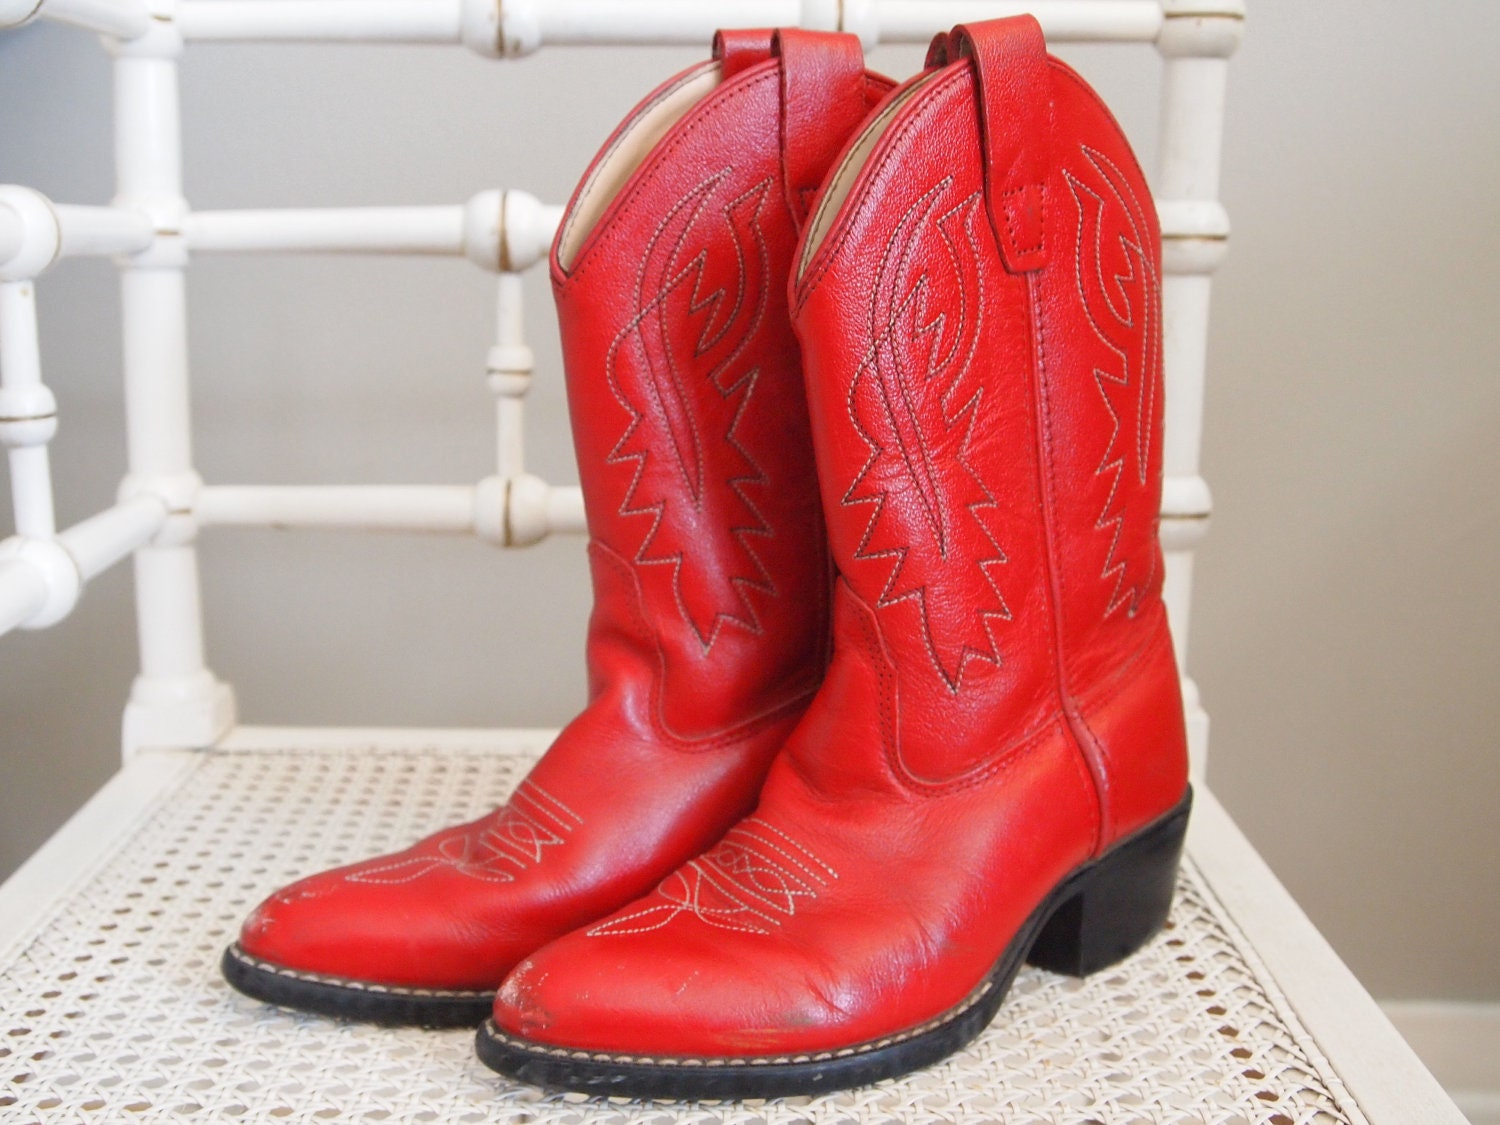 size 5.5 vintage red cowboy boots by violetcrownvintage on Etsy